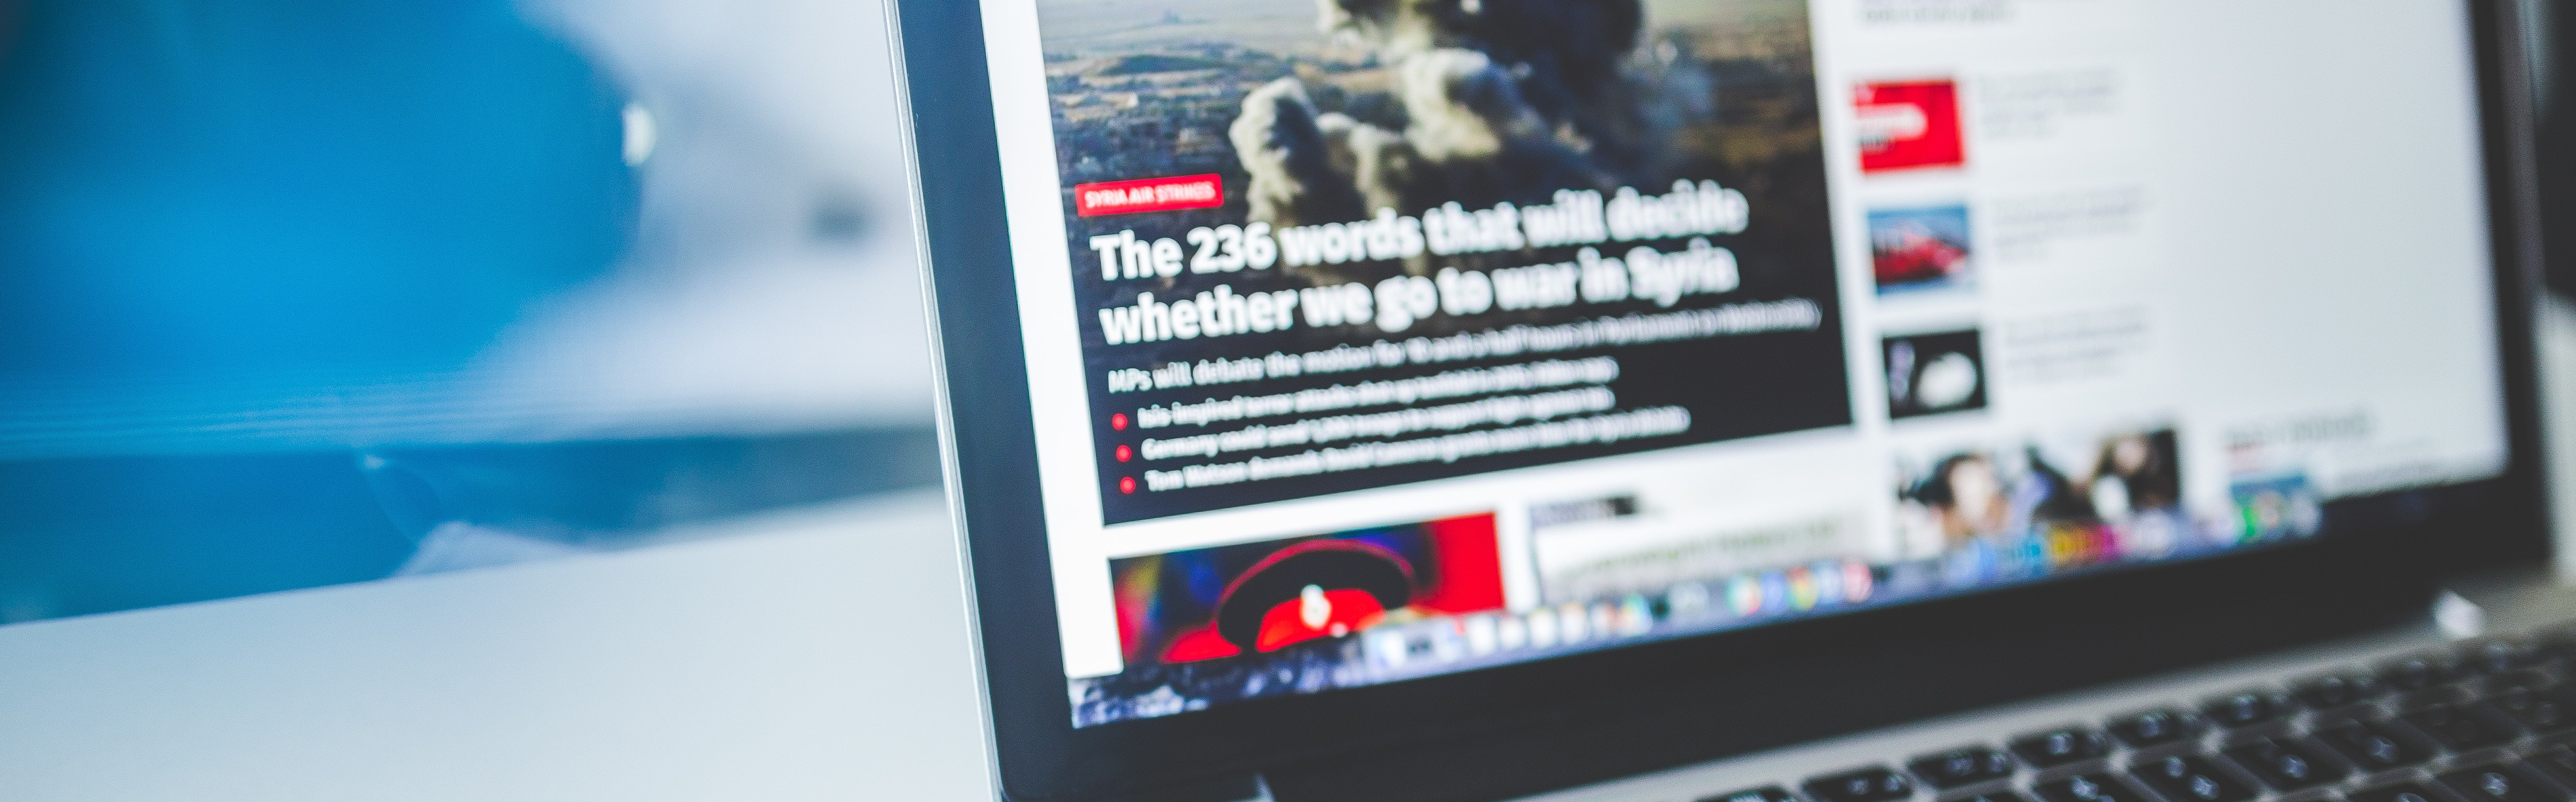 computer with browser open to news site